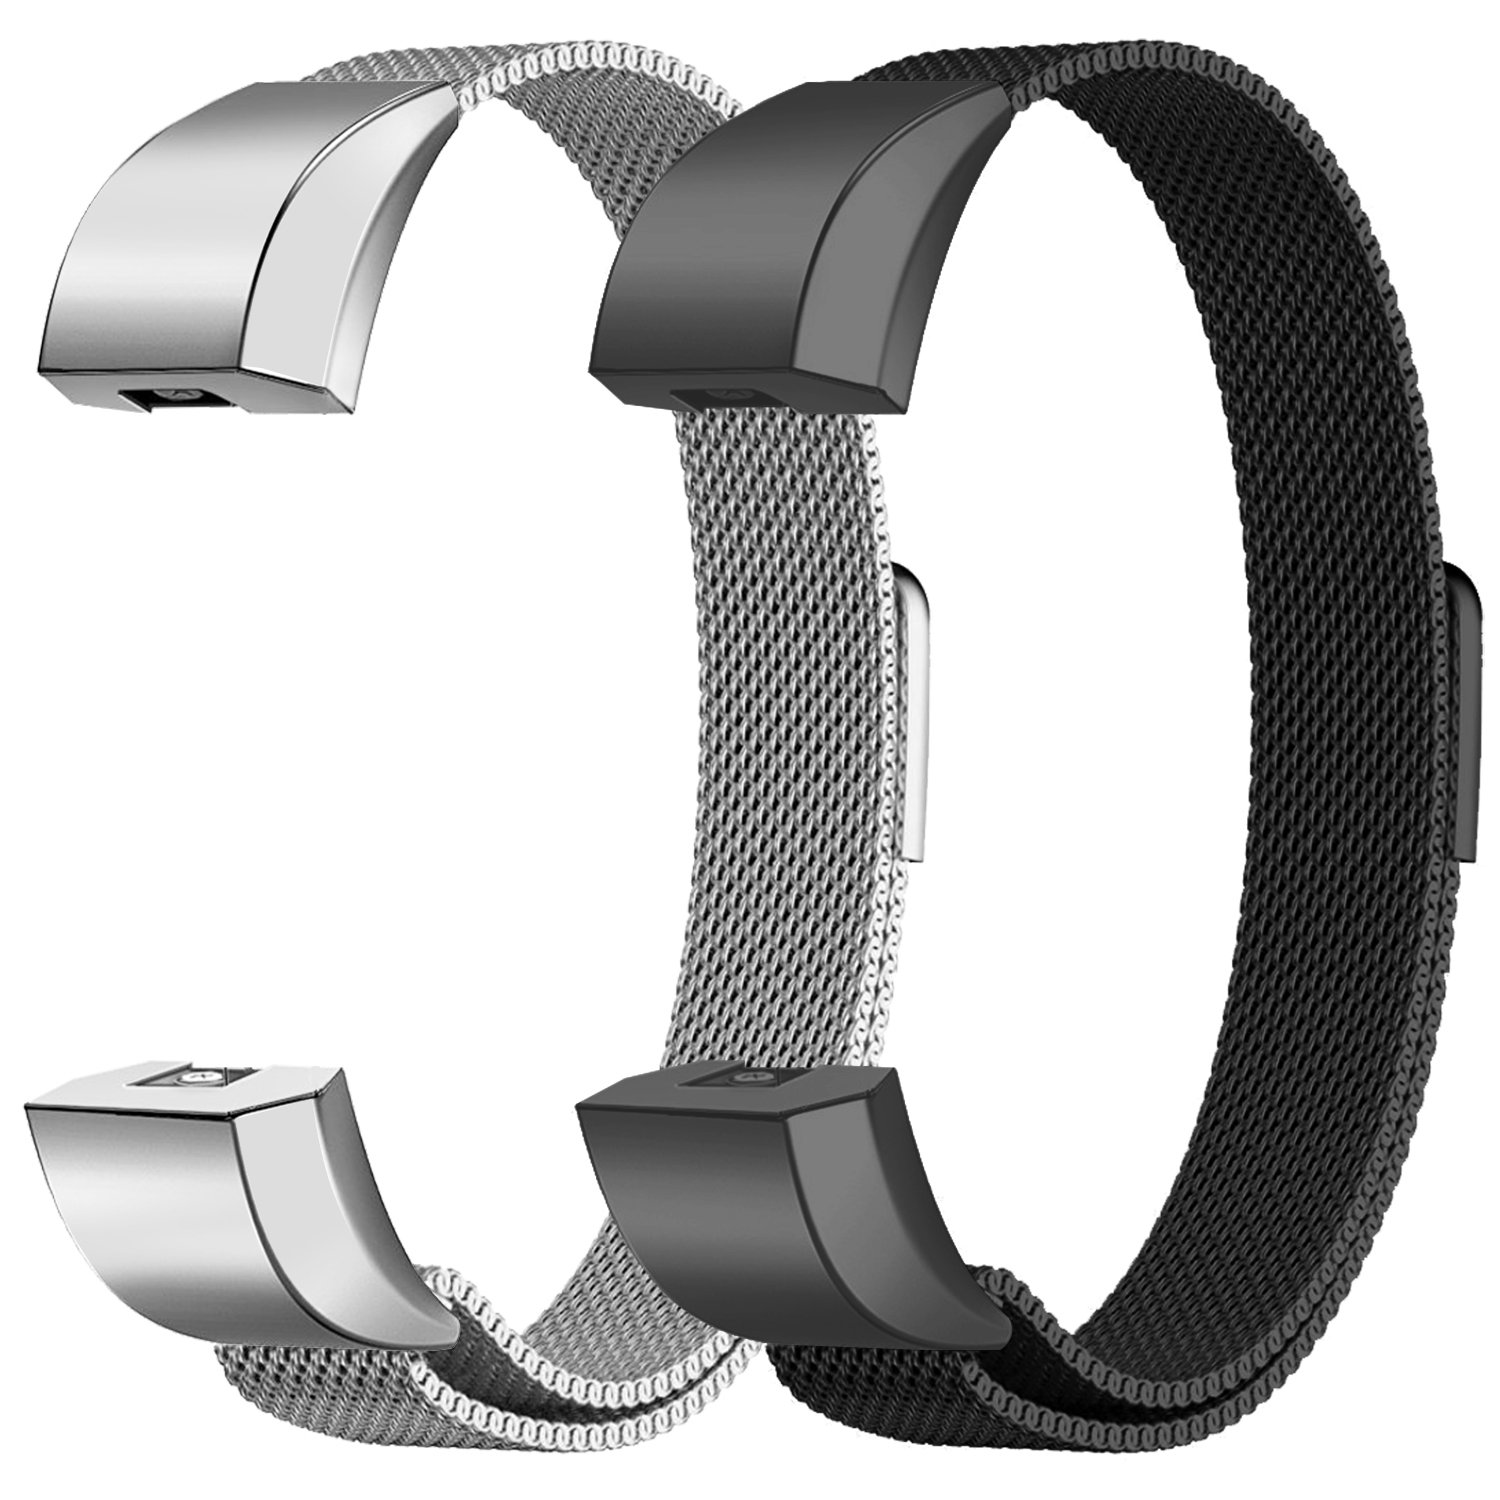 "Oitom Fitbit Alta HR Accessory Bands and Fitbit Alta Band, (2 Size) Large 6.7""-9.3"" Small 5.1""-6.7"" 2 Pack"